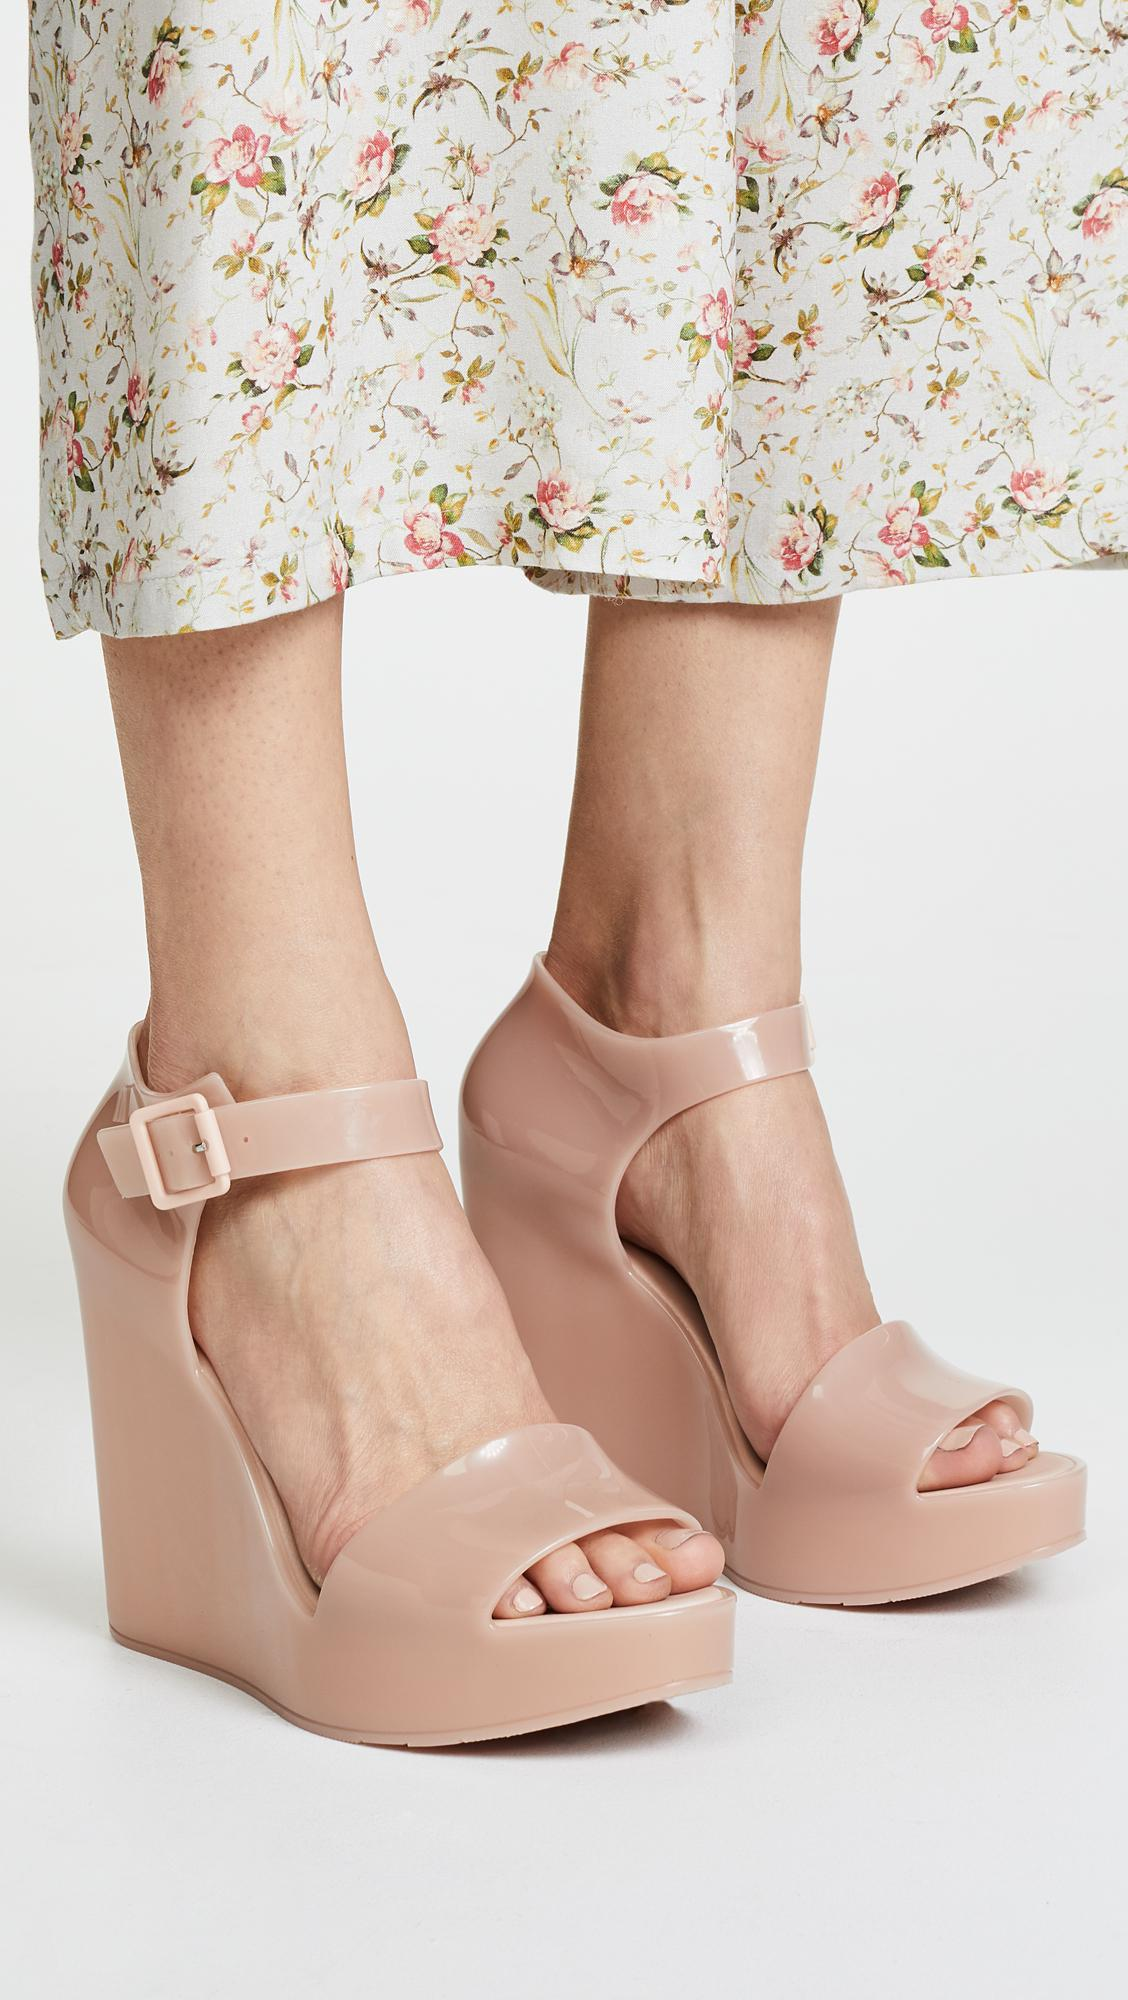 ee05a98b211c Lyst - Melissa Mar Wedge Sandals in Pink